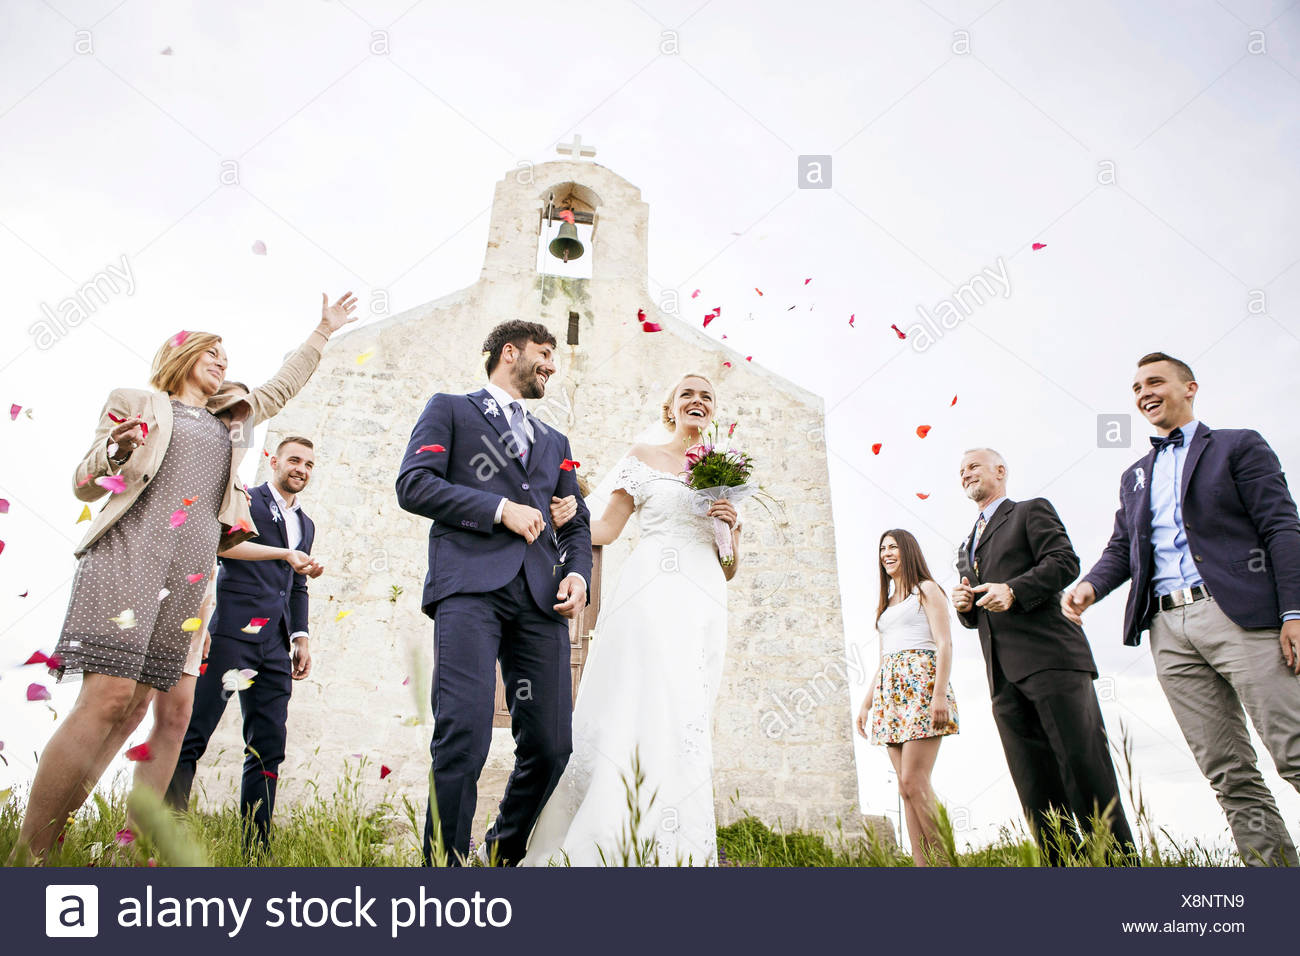 Guests throwing rose petals on bride and groom - Stock Image